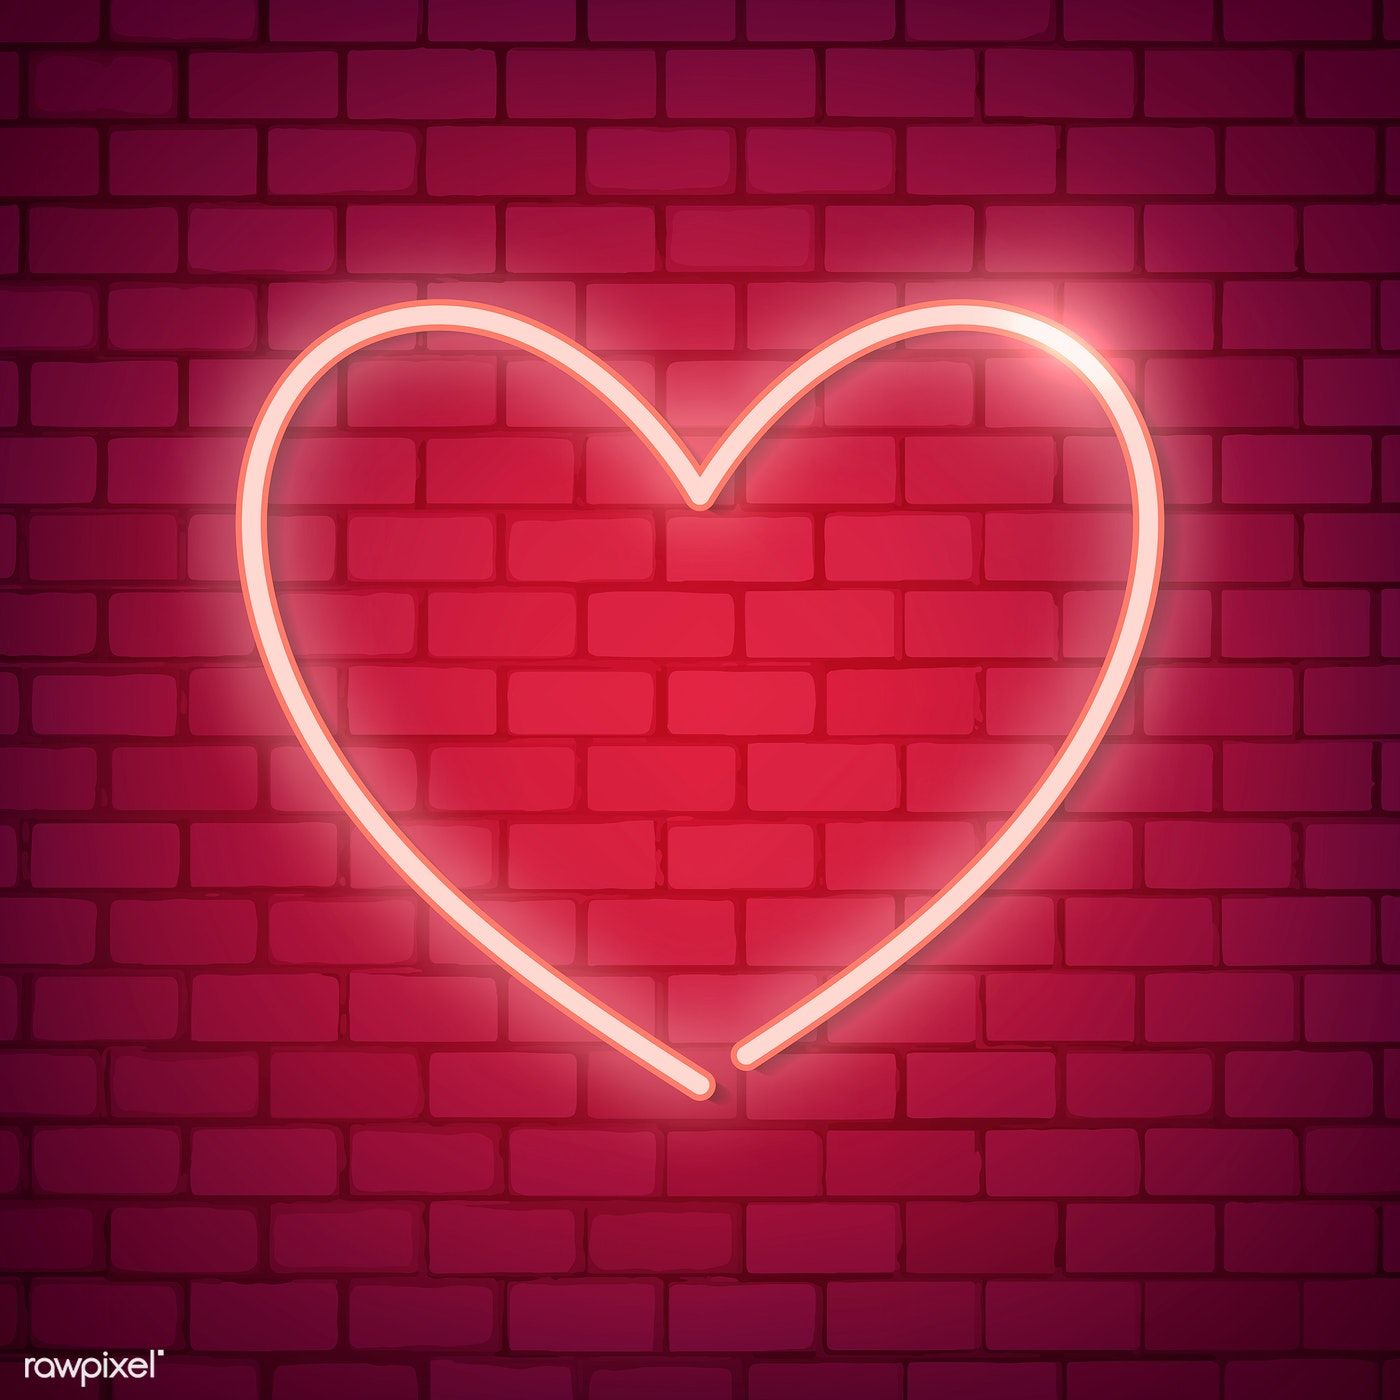 Neon light heart icon on red background free image by